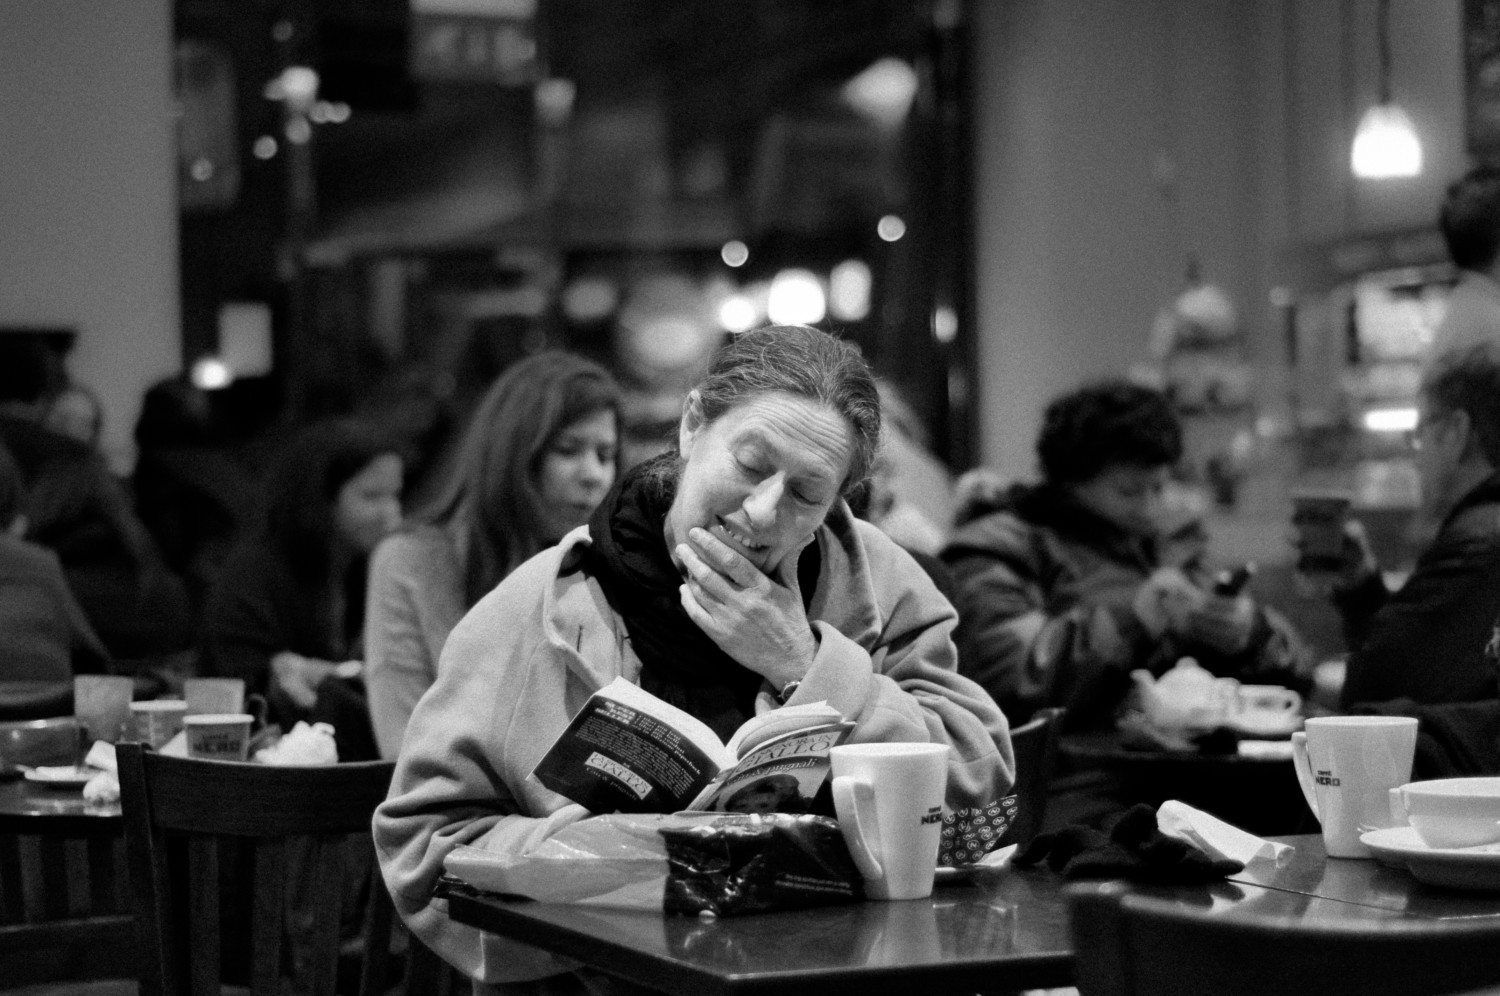 A woman reads a book in a coffee shop